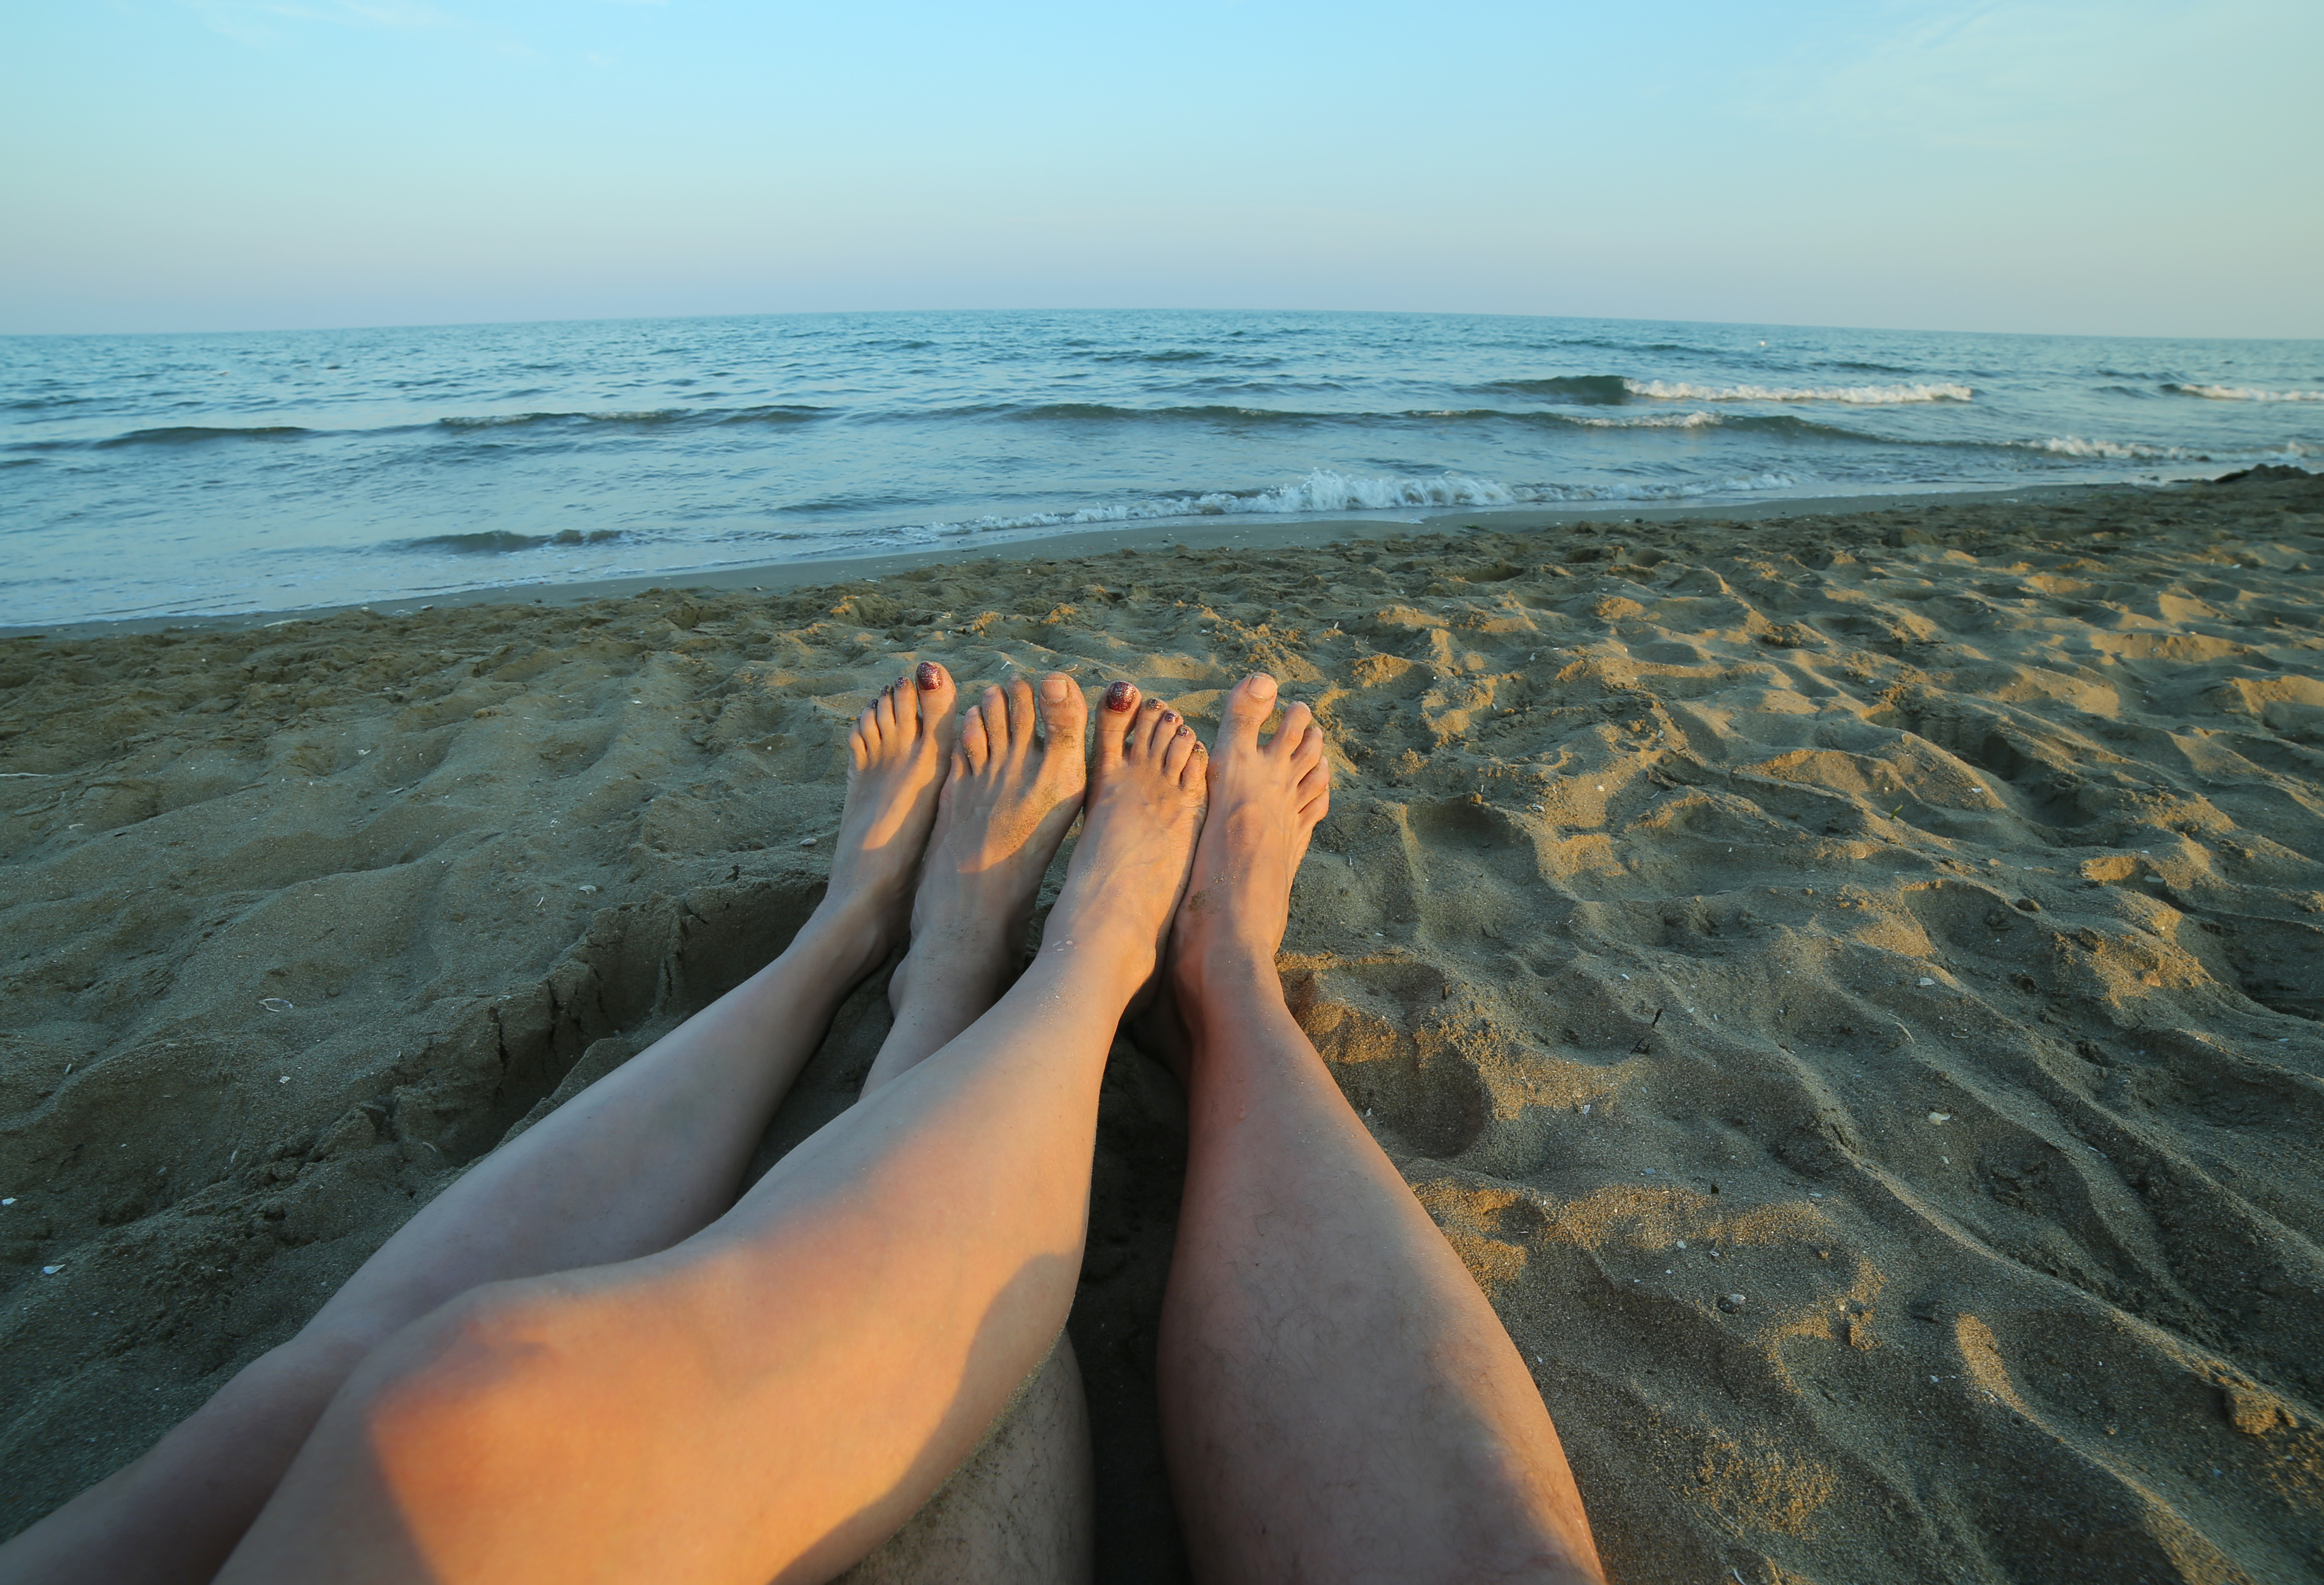 Nude beaches in germany